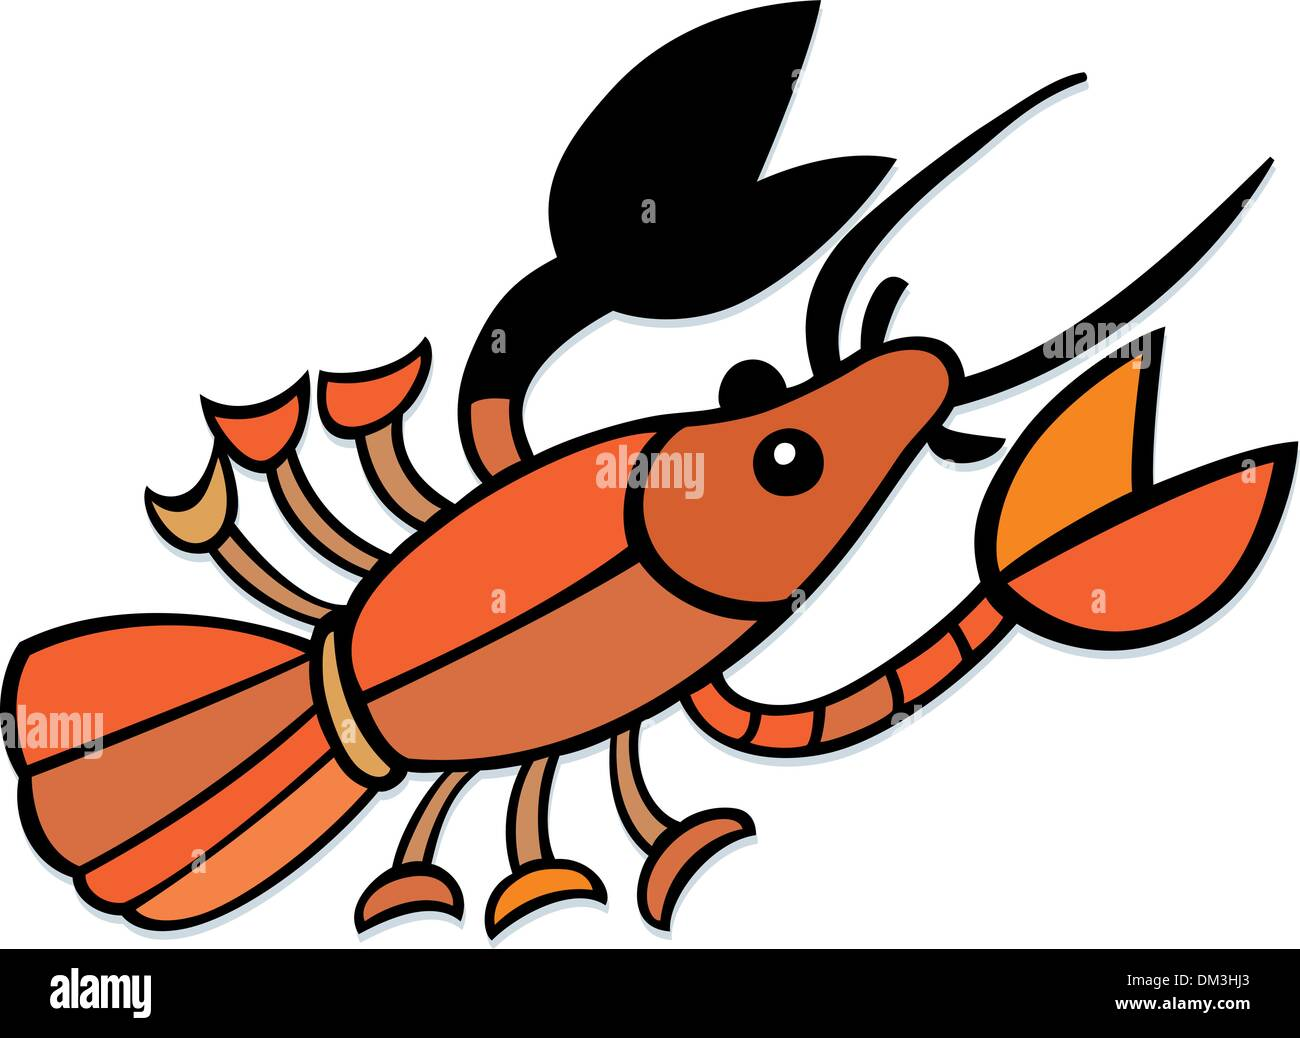 hight resolution of crayfish stock image